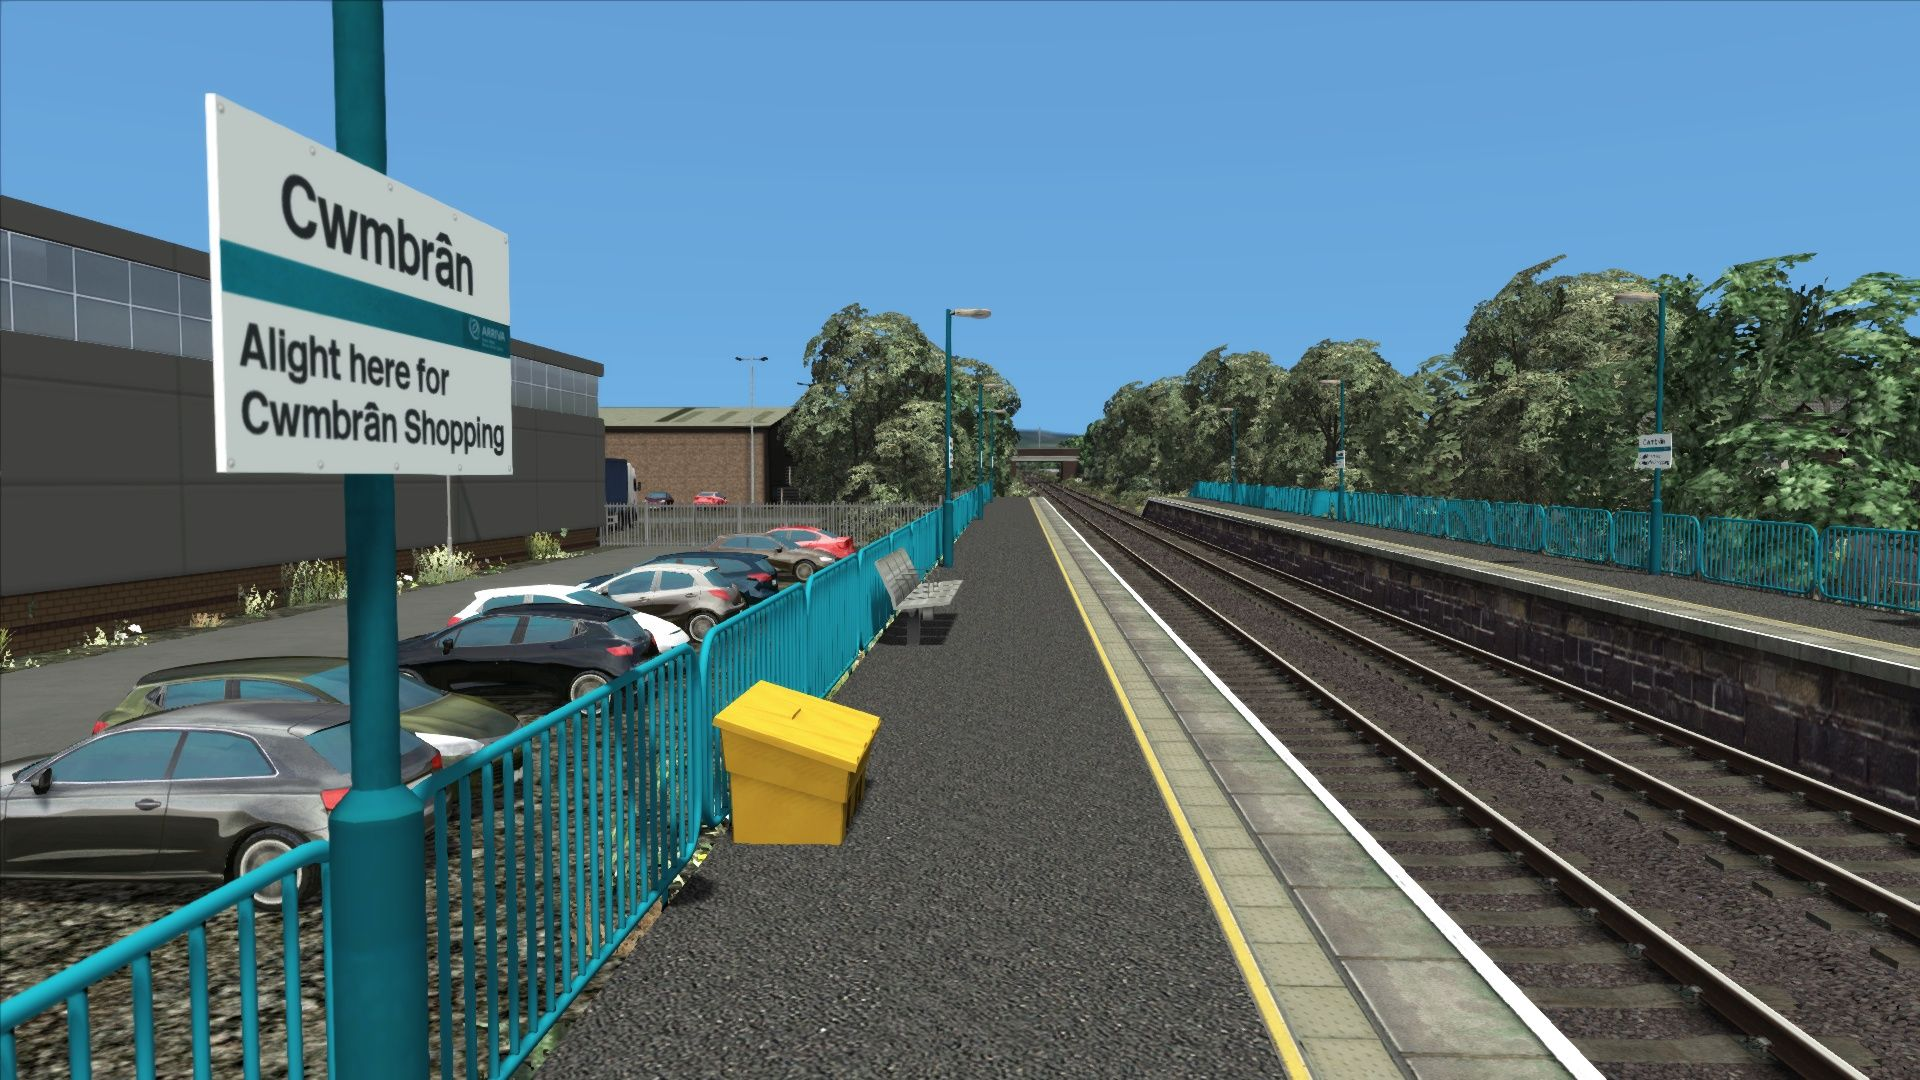 Screenshot_[BMG] Welsh Marches Line - Newport to Shrewsbury_51.65749--3.016